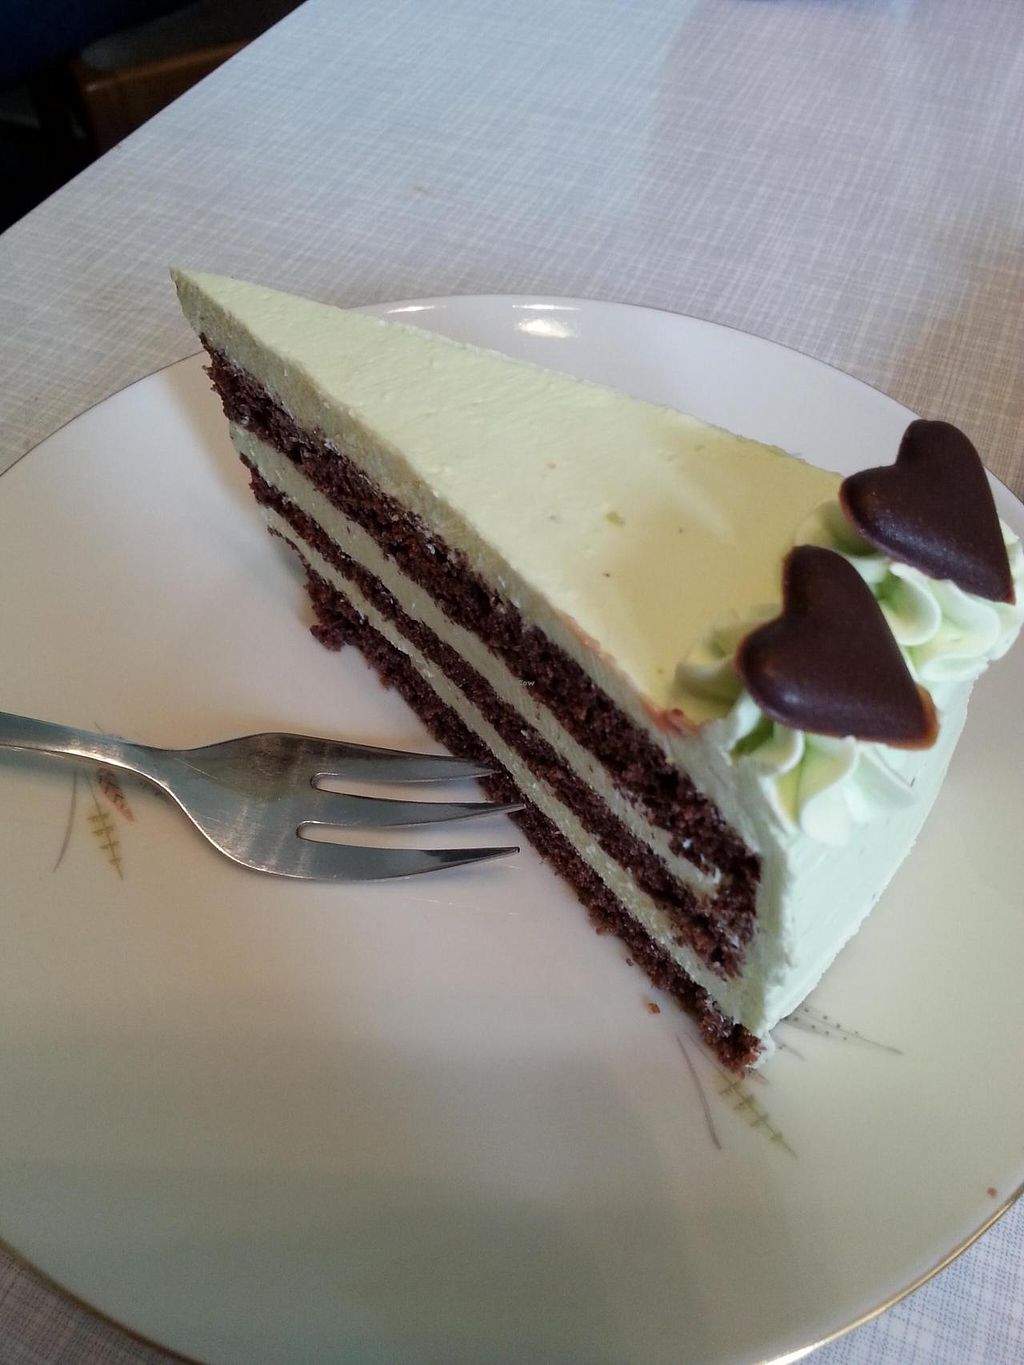 """Photo of Cafe Hibiskus  by <a href=""""/members/profile/coi"""">coi</a> <br/>Mint-chocolate-cake  <br/> March 1, 2015  - <a href='/contact/abuse/image/43348/94486'>Report</a>"""